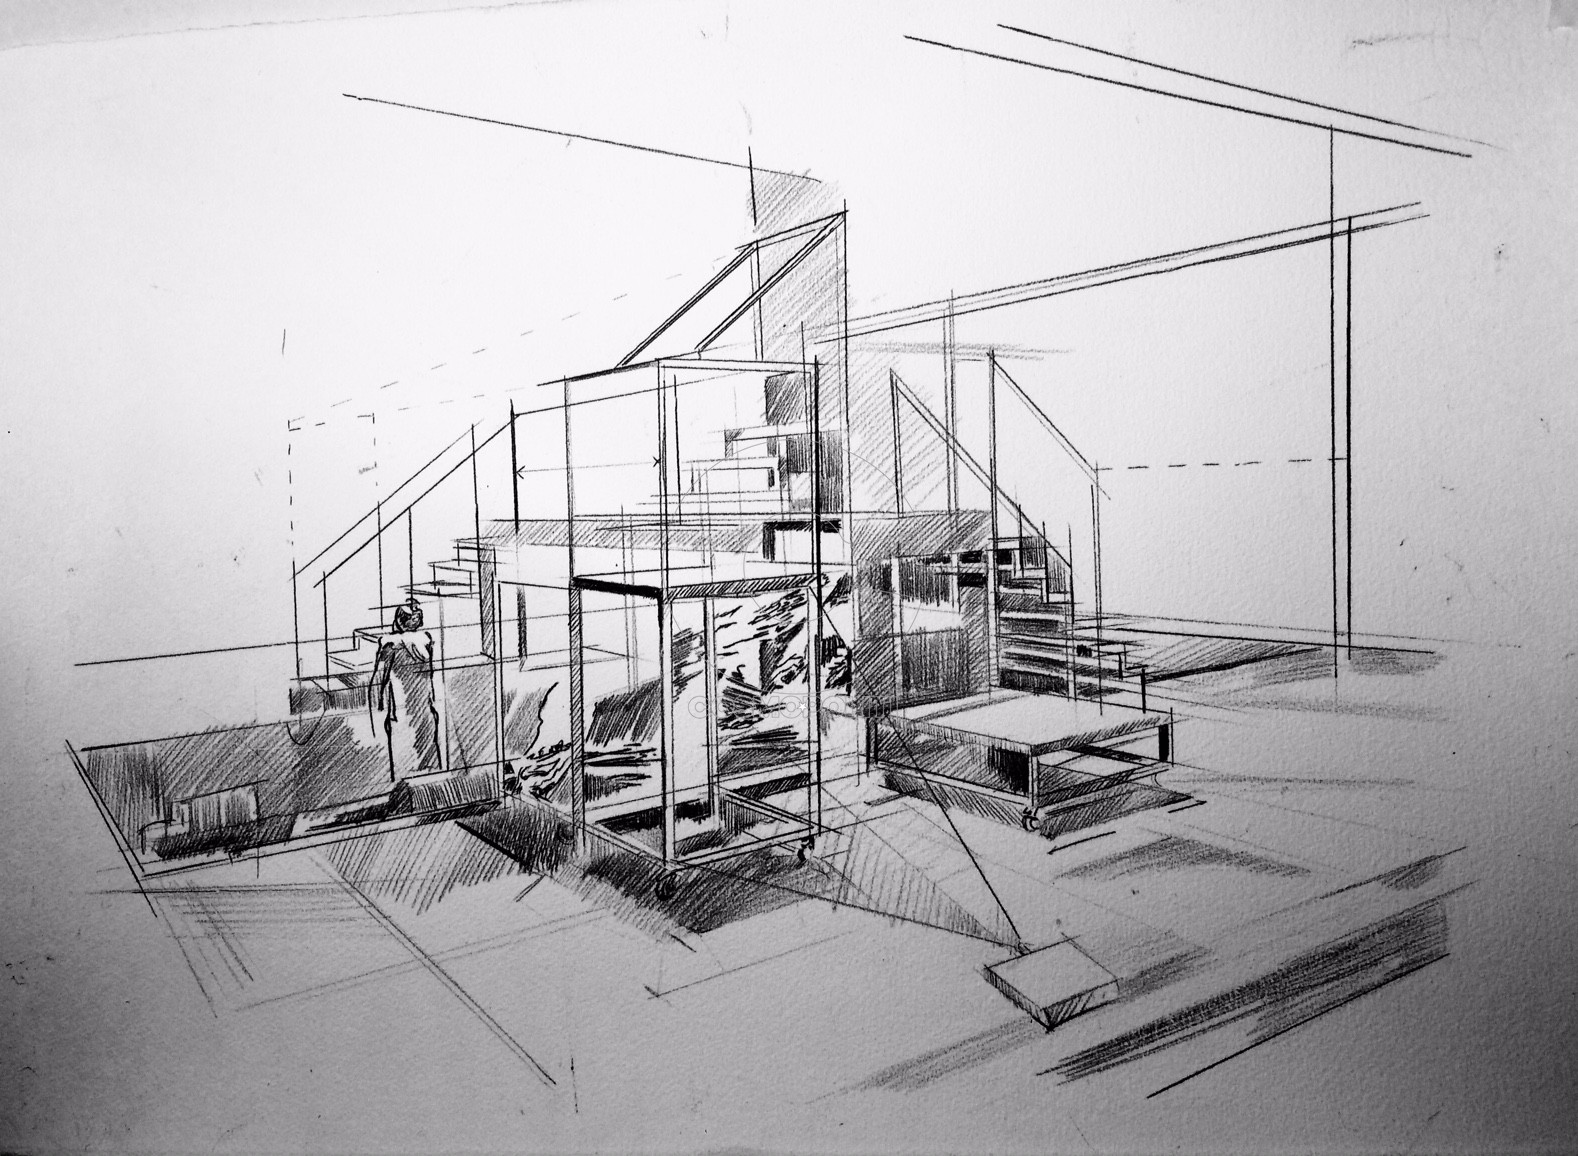 Constructivist installation, drawing,pencil, 35X50cm.